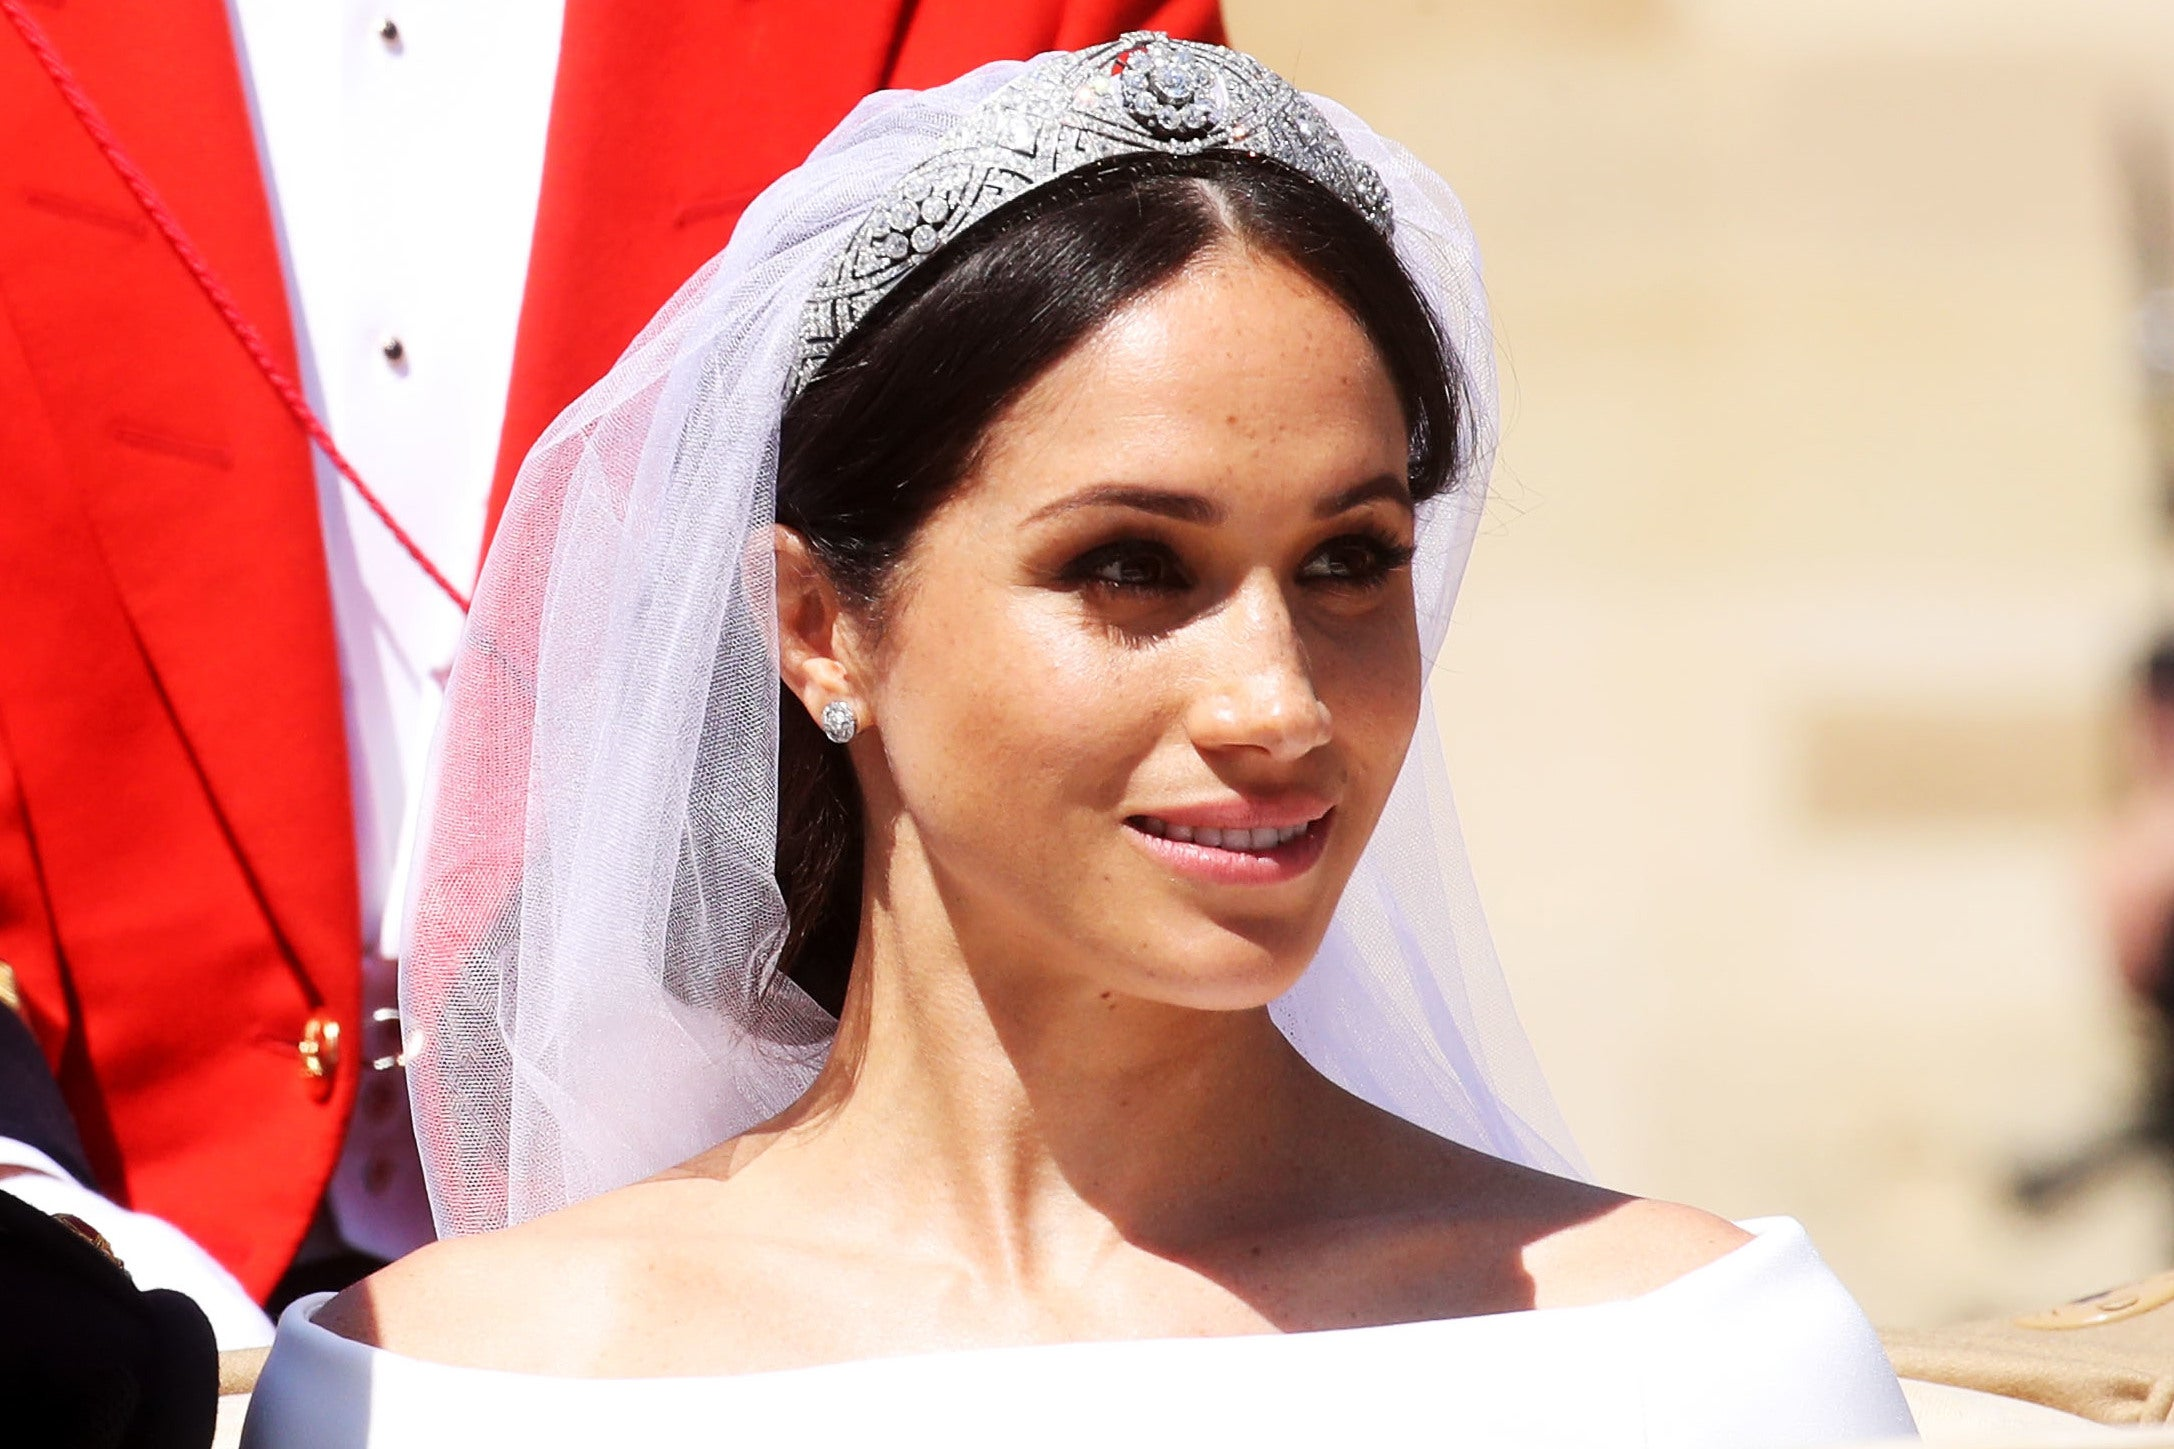 Prince Harry thanked Meghan Markle's makeup artist after the royal wedding